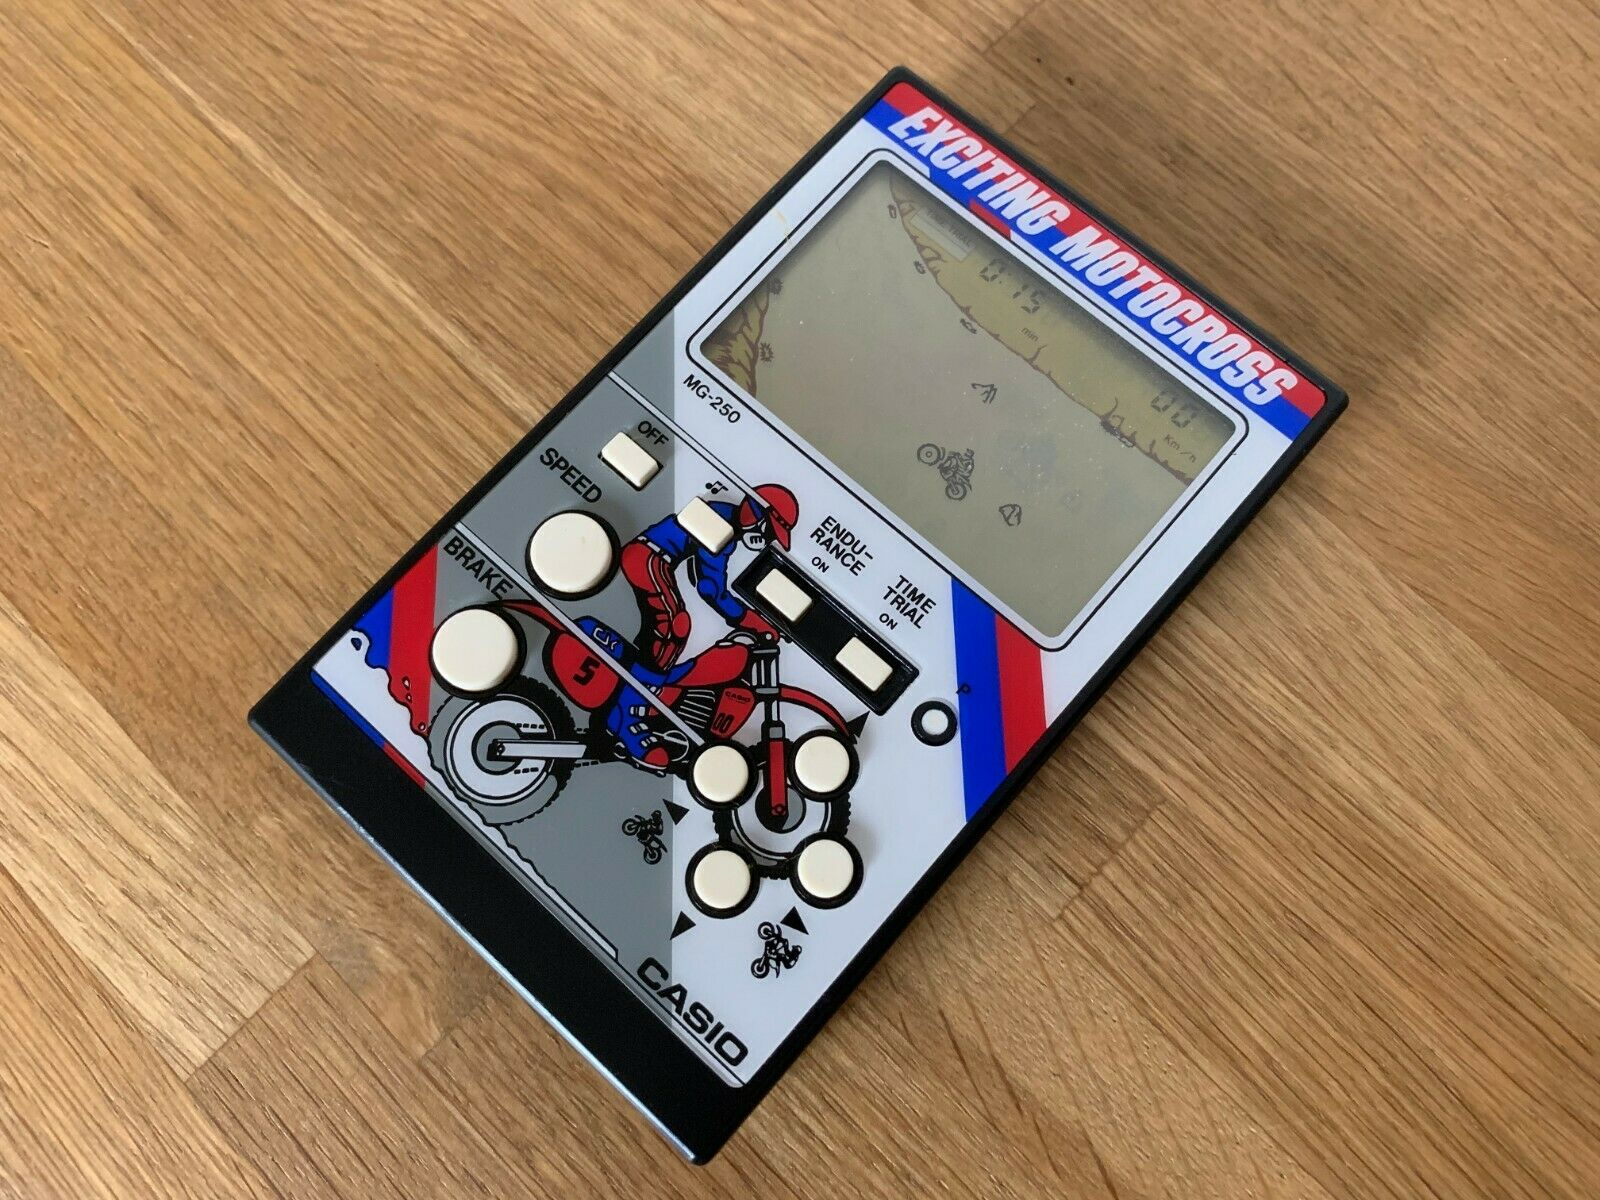 Väldigt sällsynt Casio Excting Motocross MG-250 1985 Vintage LCD Electronic Game Mint